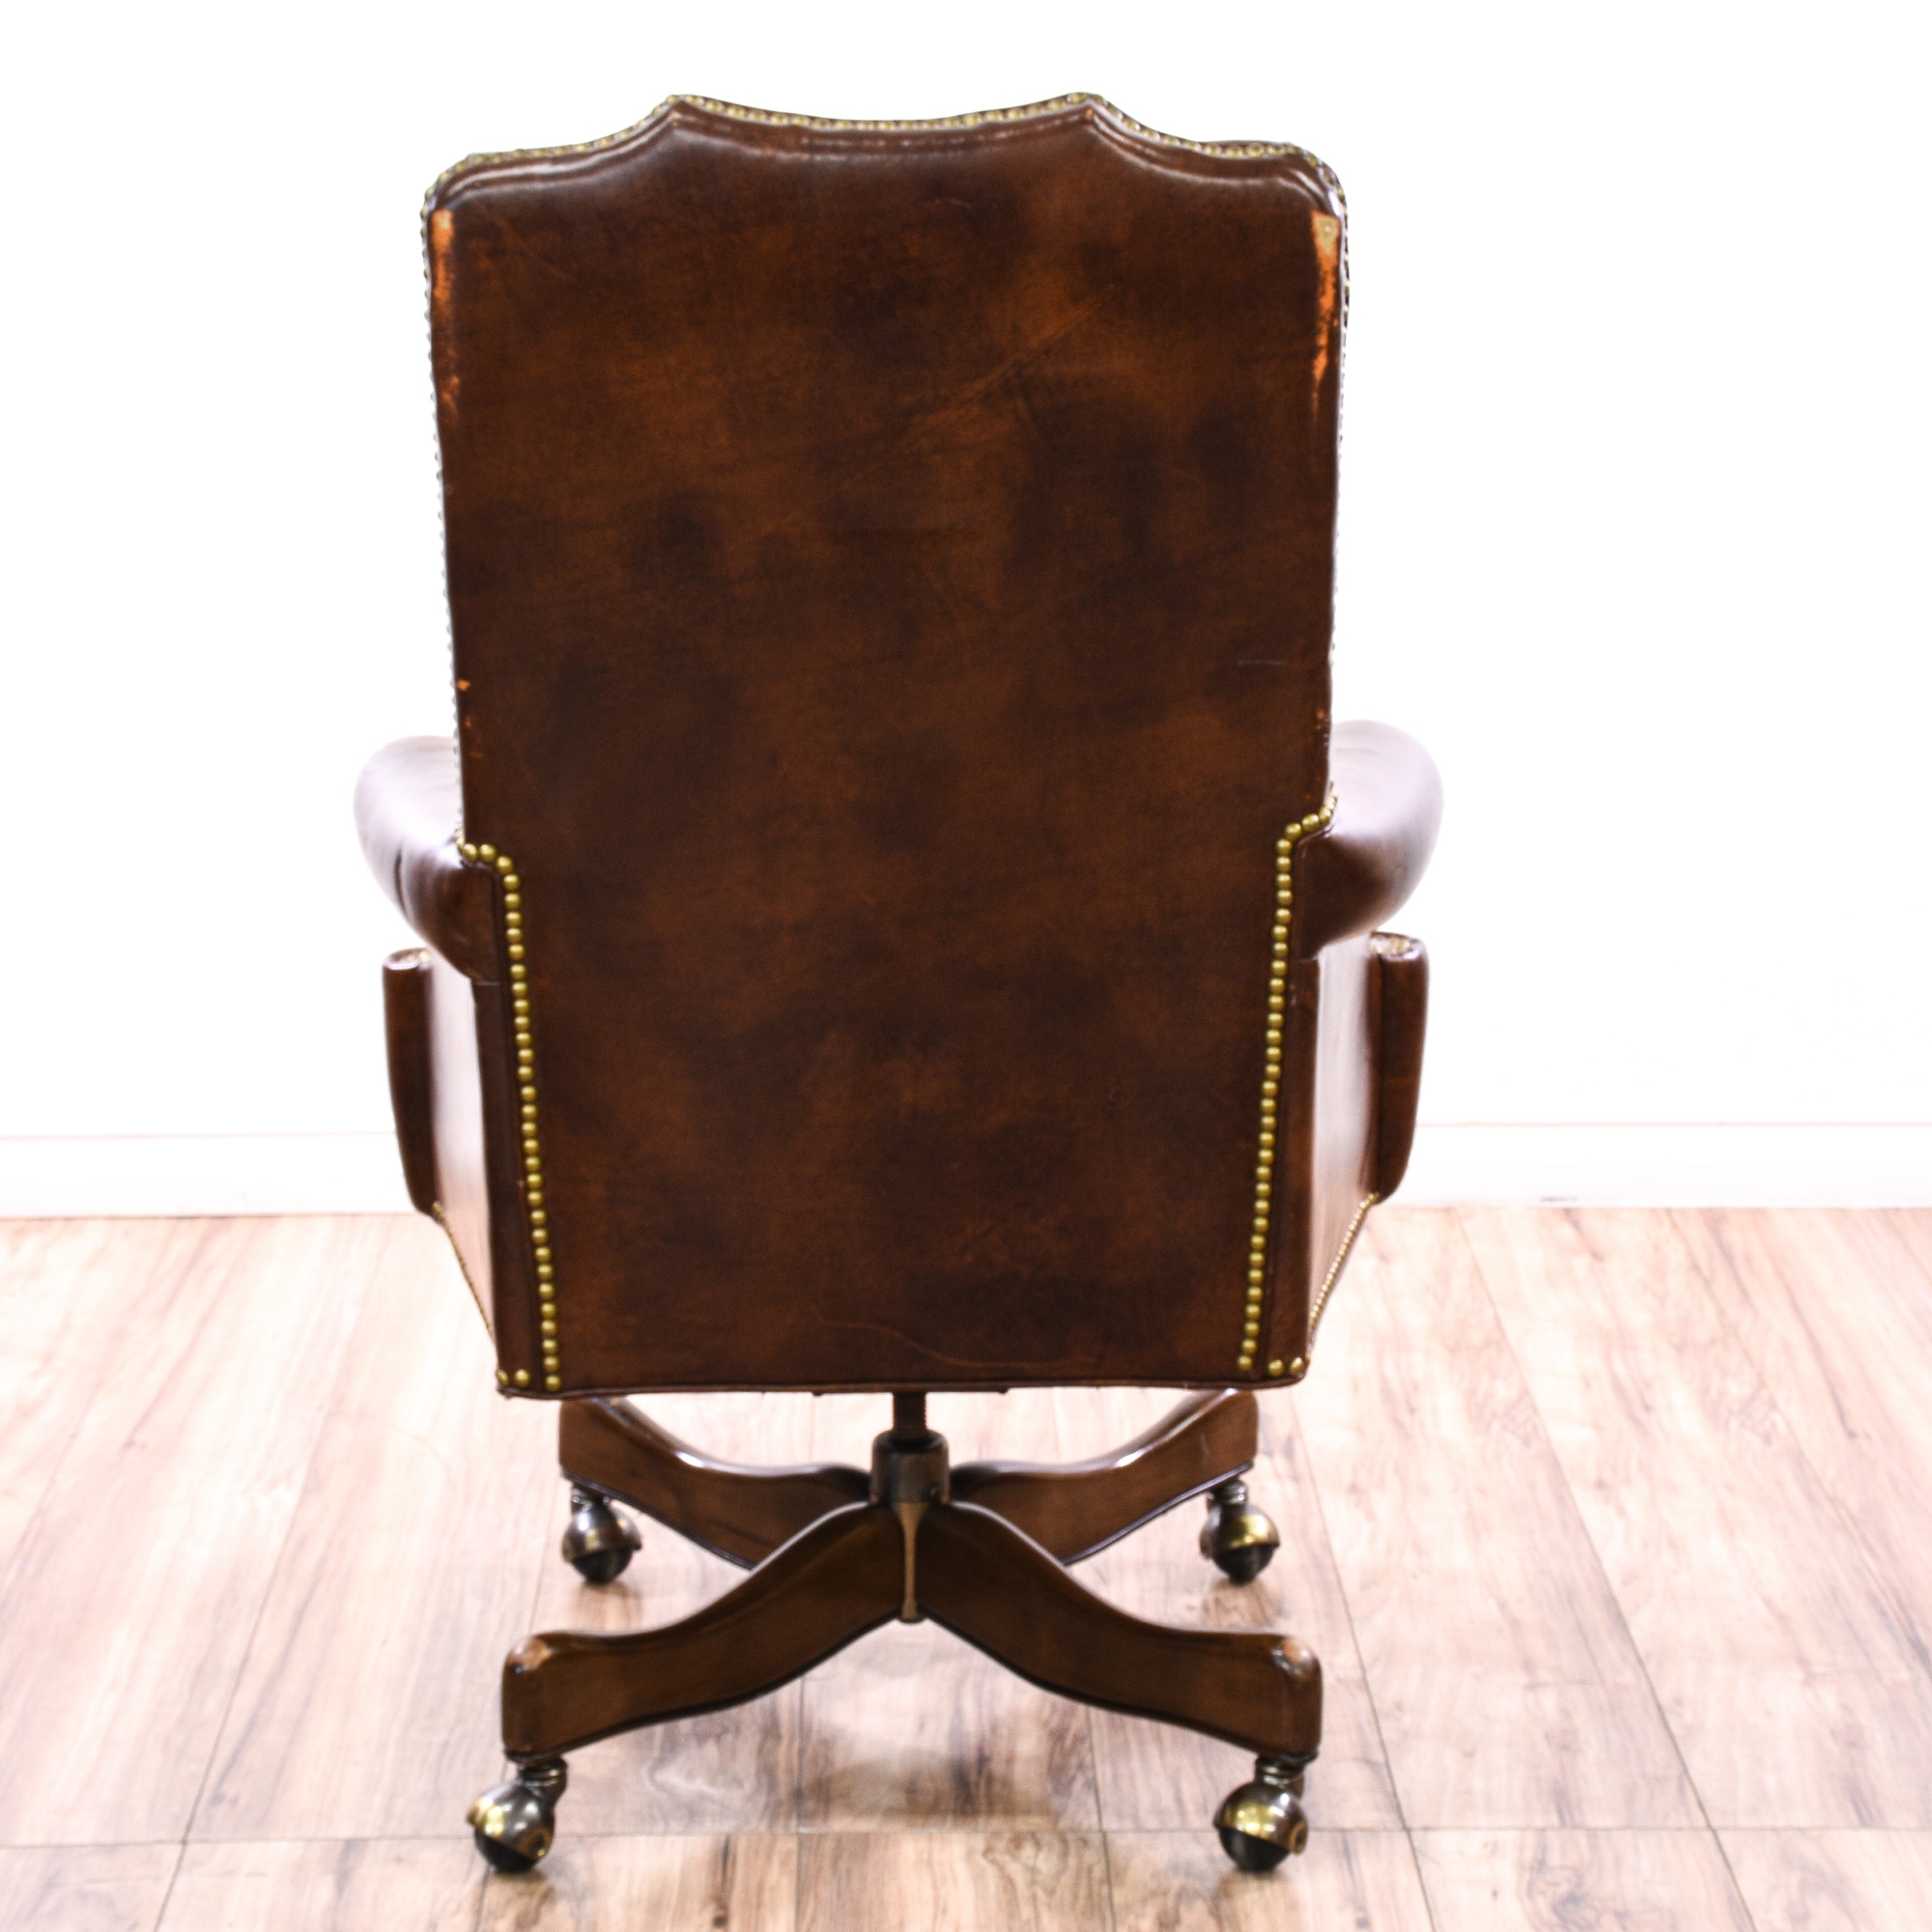 Tufted brown leather studded executive chair loveseat for Brown leather couch with studs